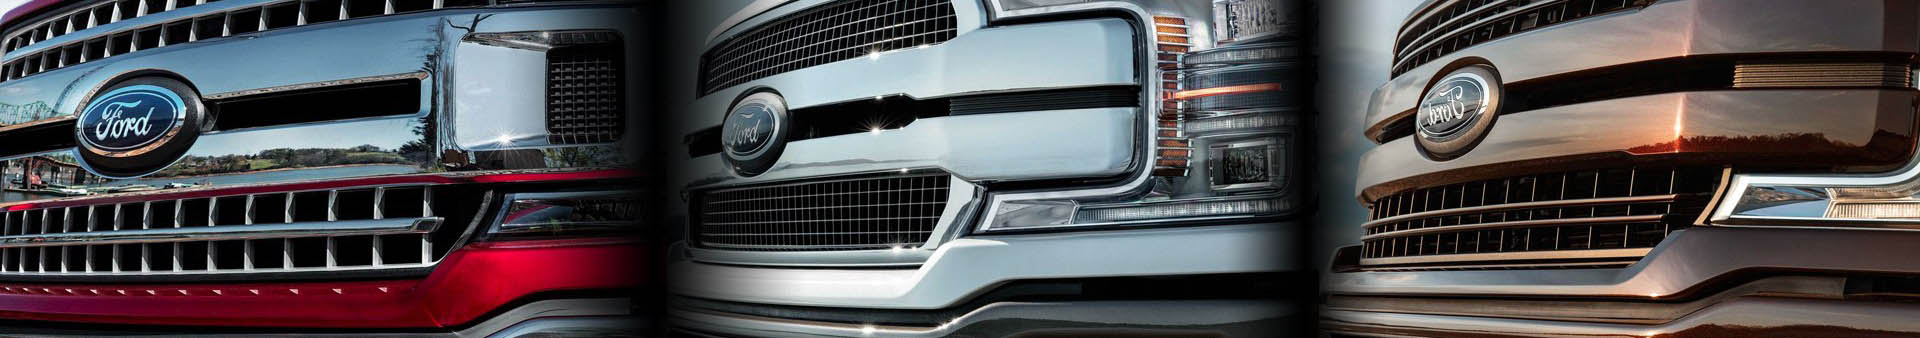 2018 Ford F150 Grille Trim